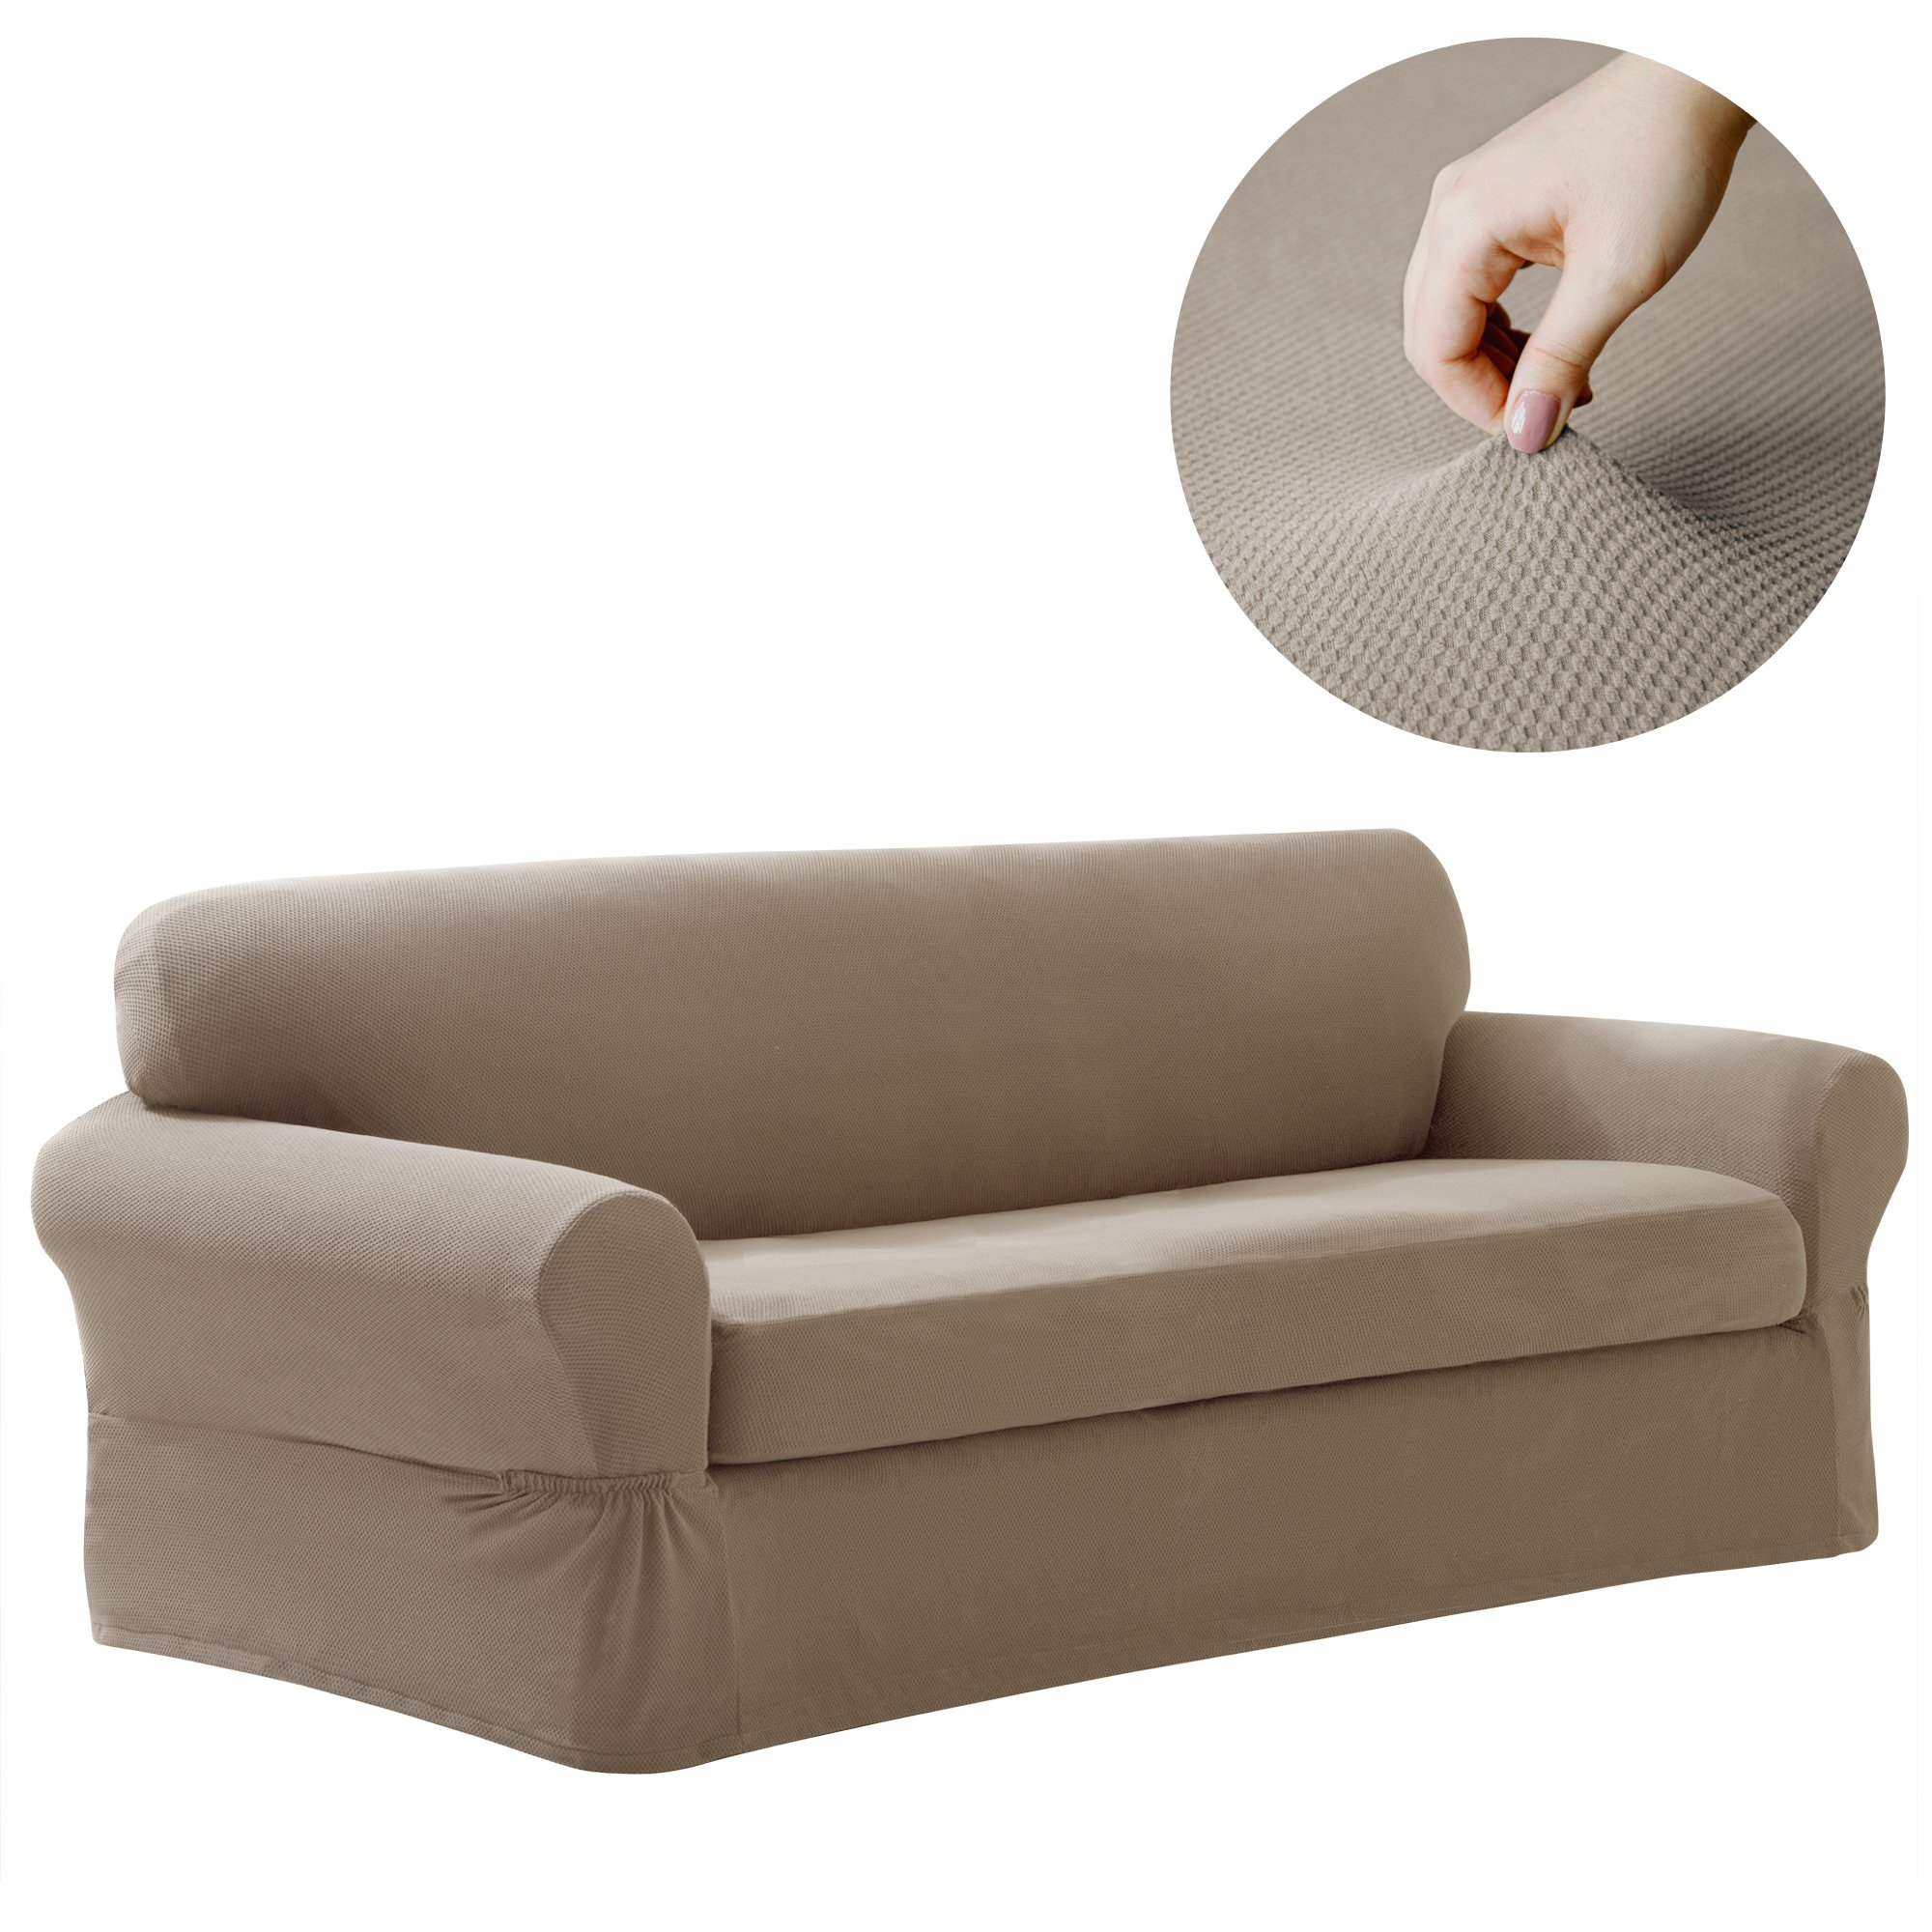 Maytex Pixel Stretch 2-Piece Sofa Furniture Cover / Slipcover, Sand by MAYTEX